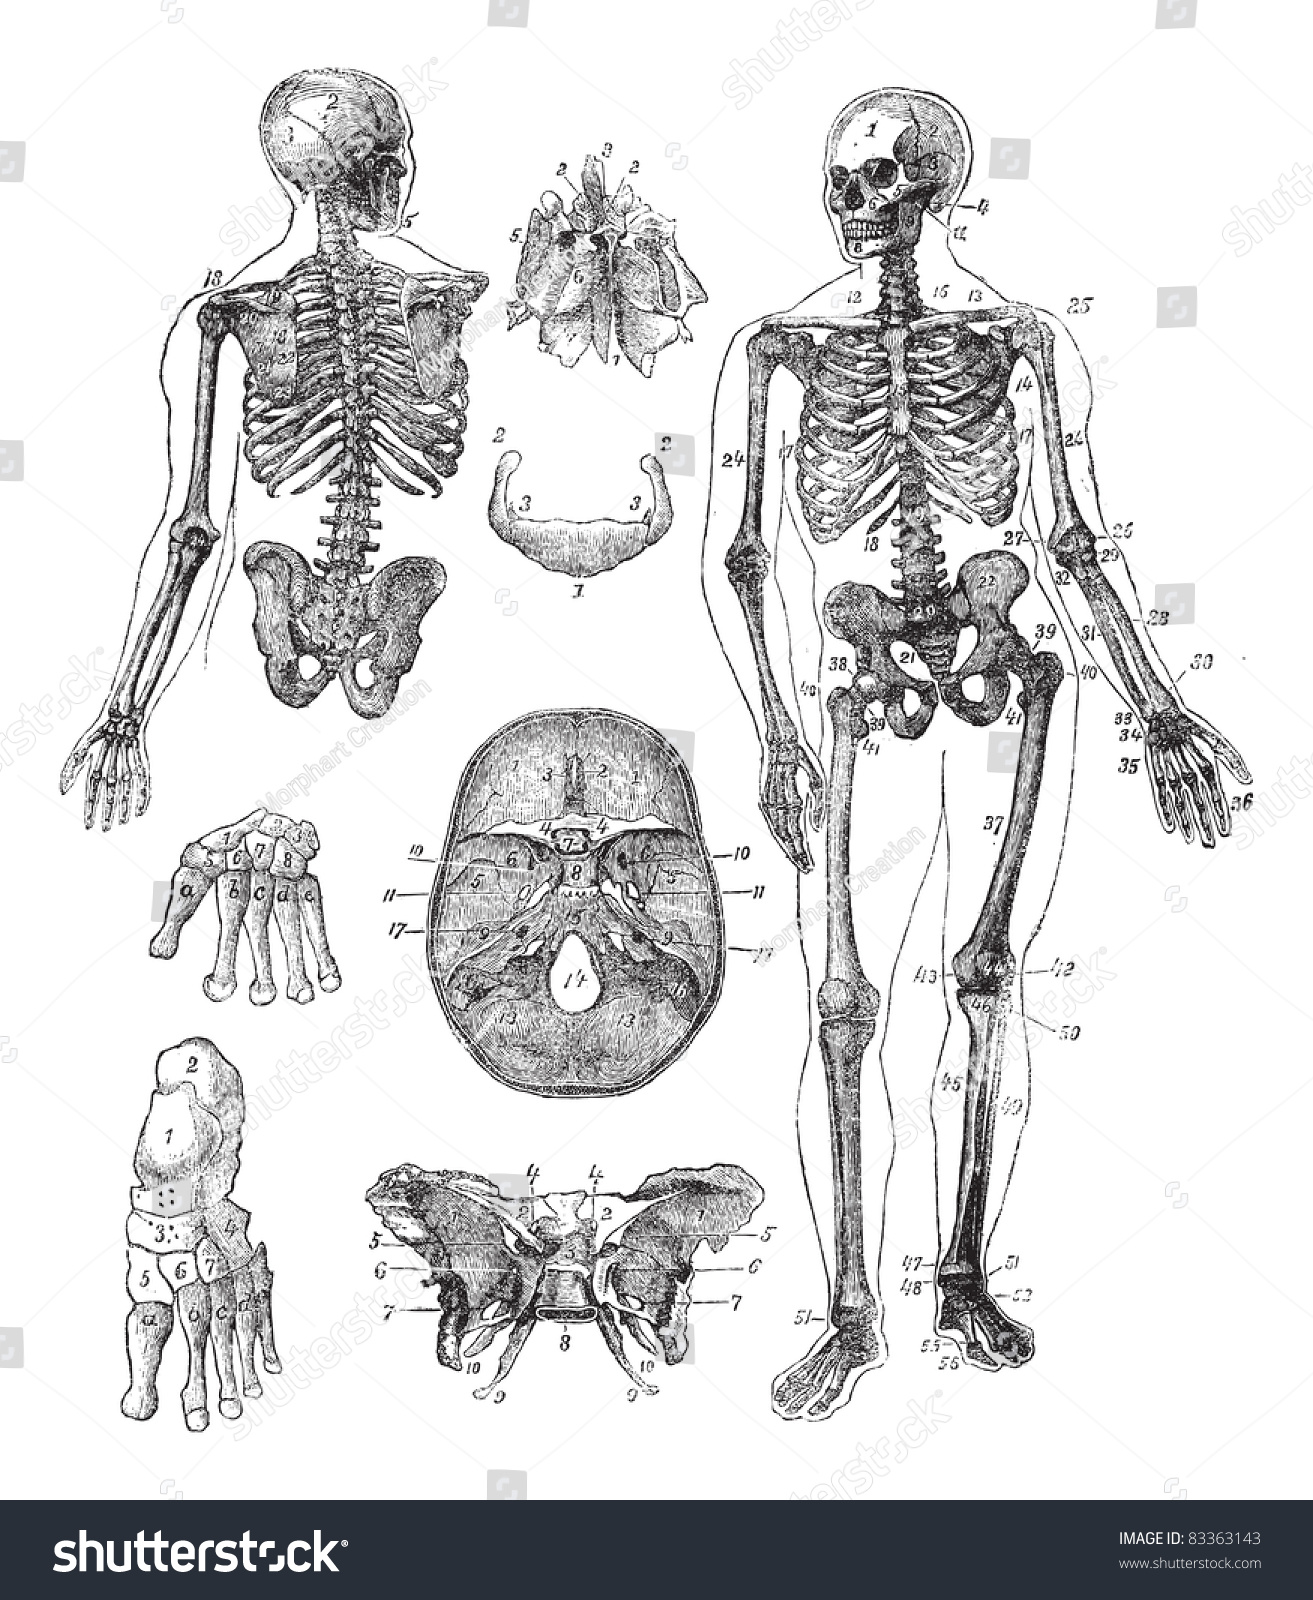 human skeleton vintage engraving old engraved stock vector, Skeleton